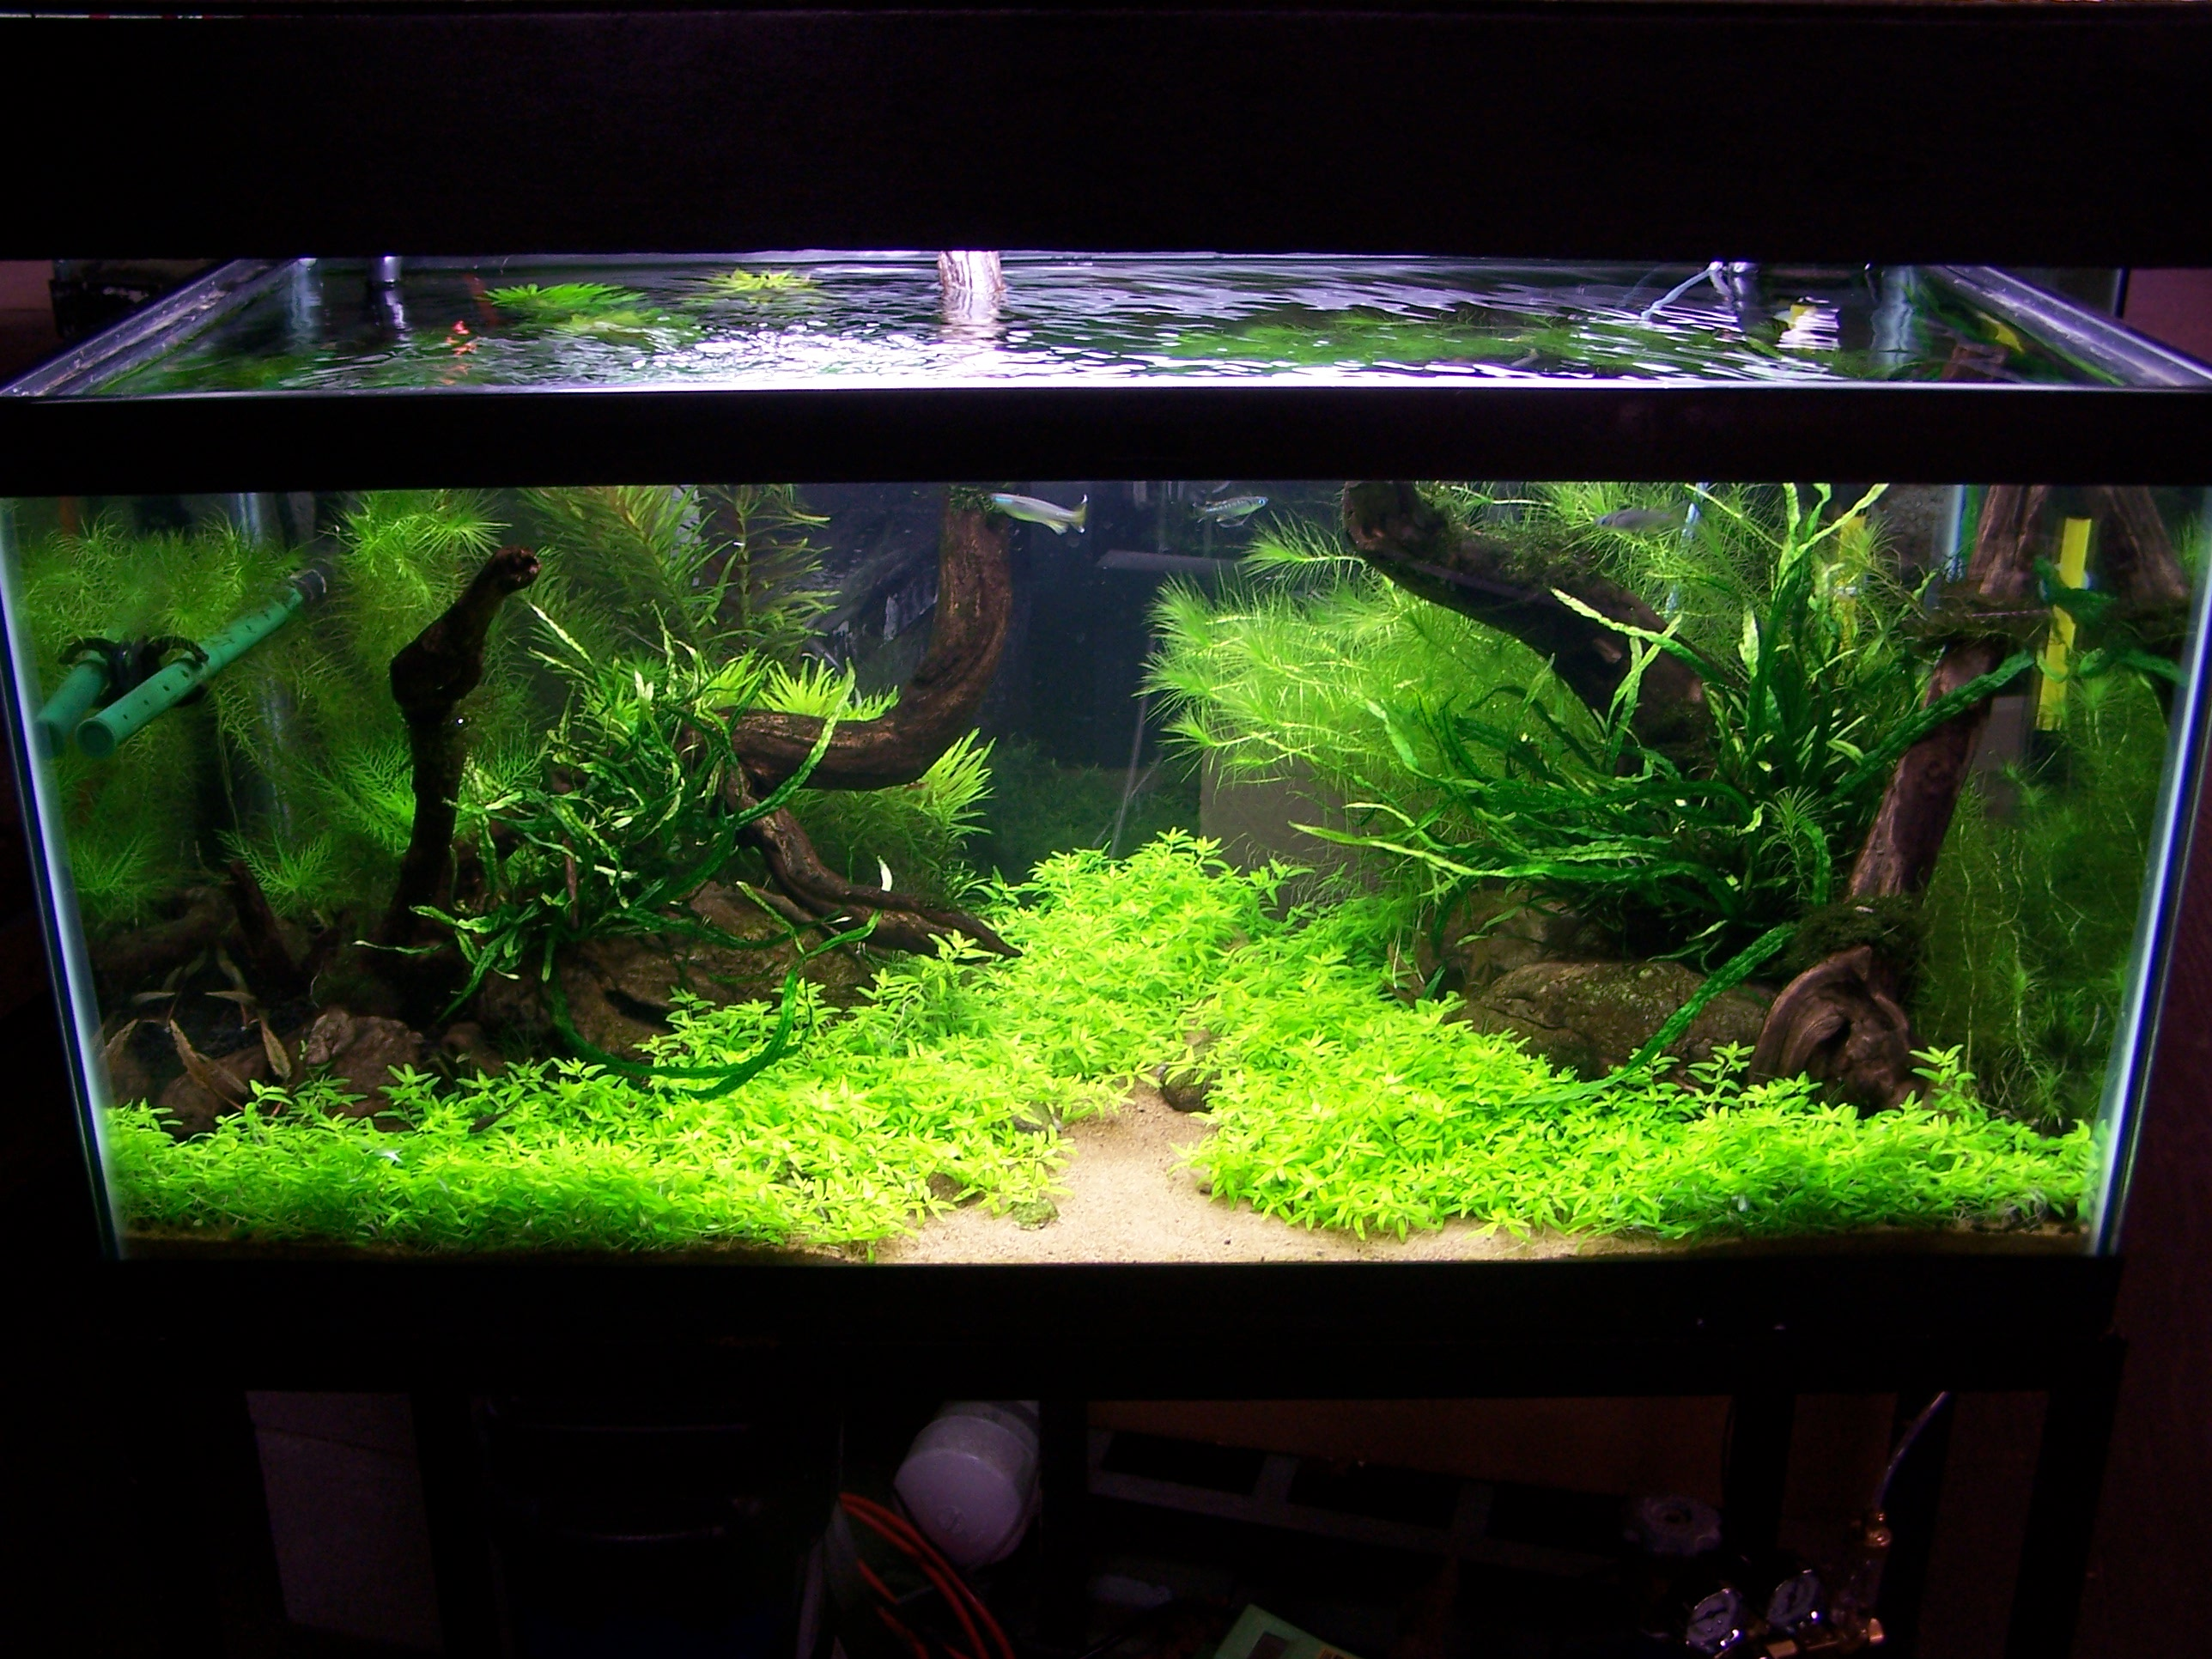 If you build a freshwater aquarium on january 1st when for Aquarium decoration ideas freshwater